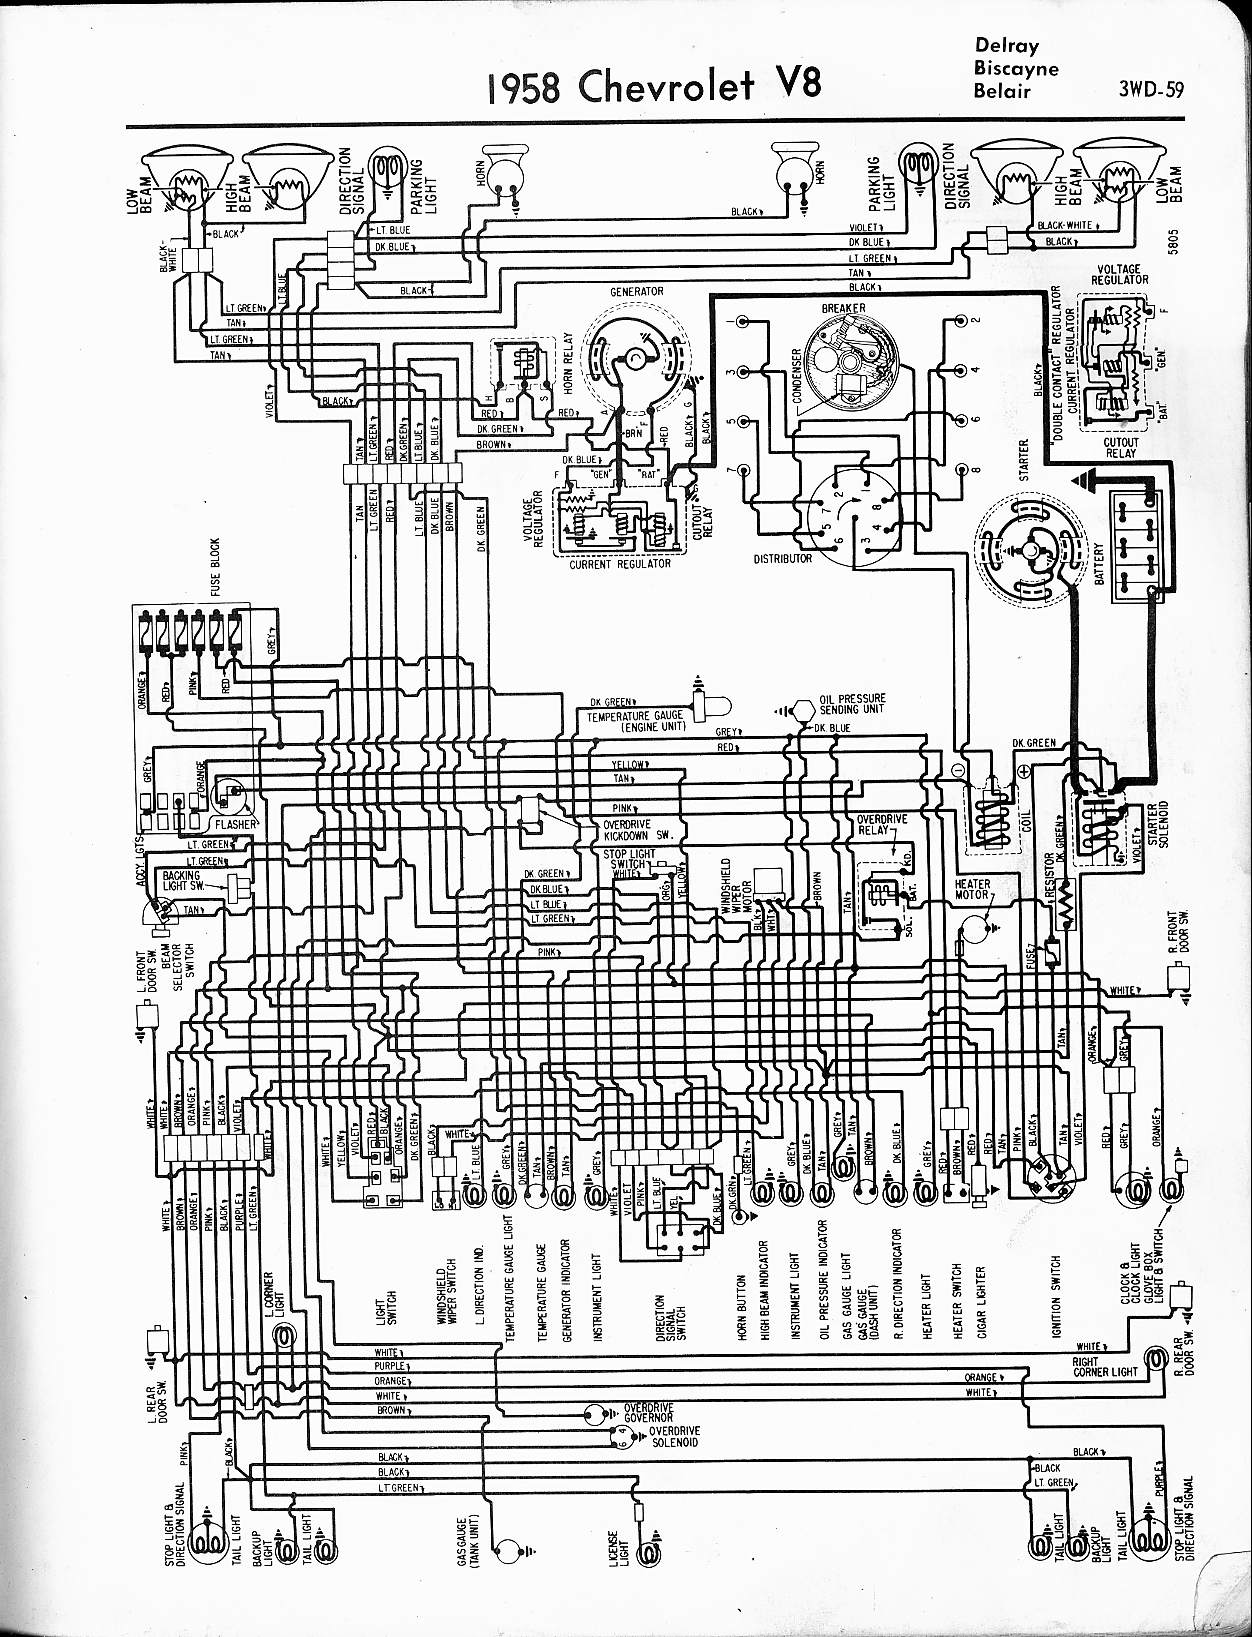 59 Chevy Truck Wiring Diagram Worksheet And For 1957 1959 Impala Detailed Schematics Rh Jvpacks Com 2004